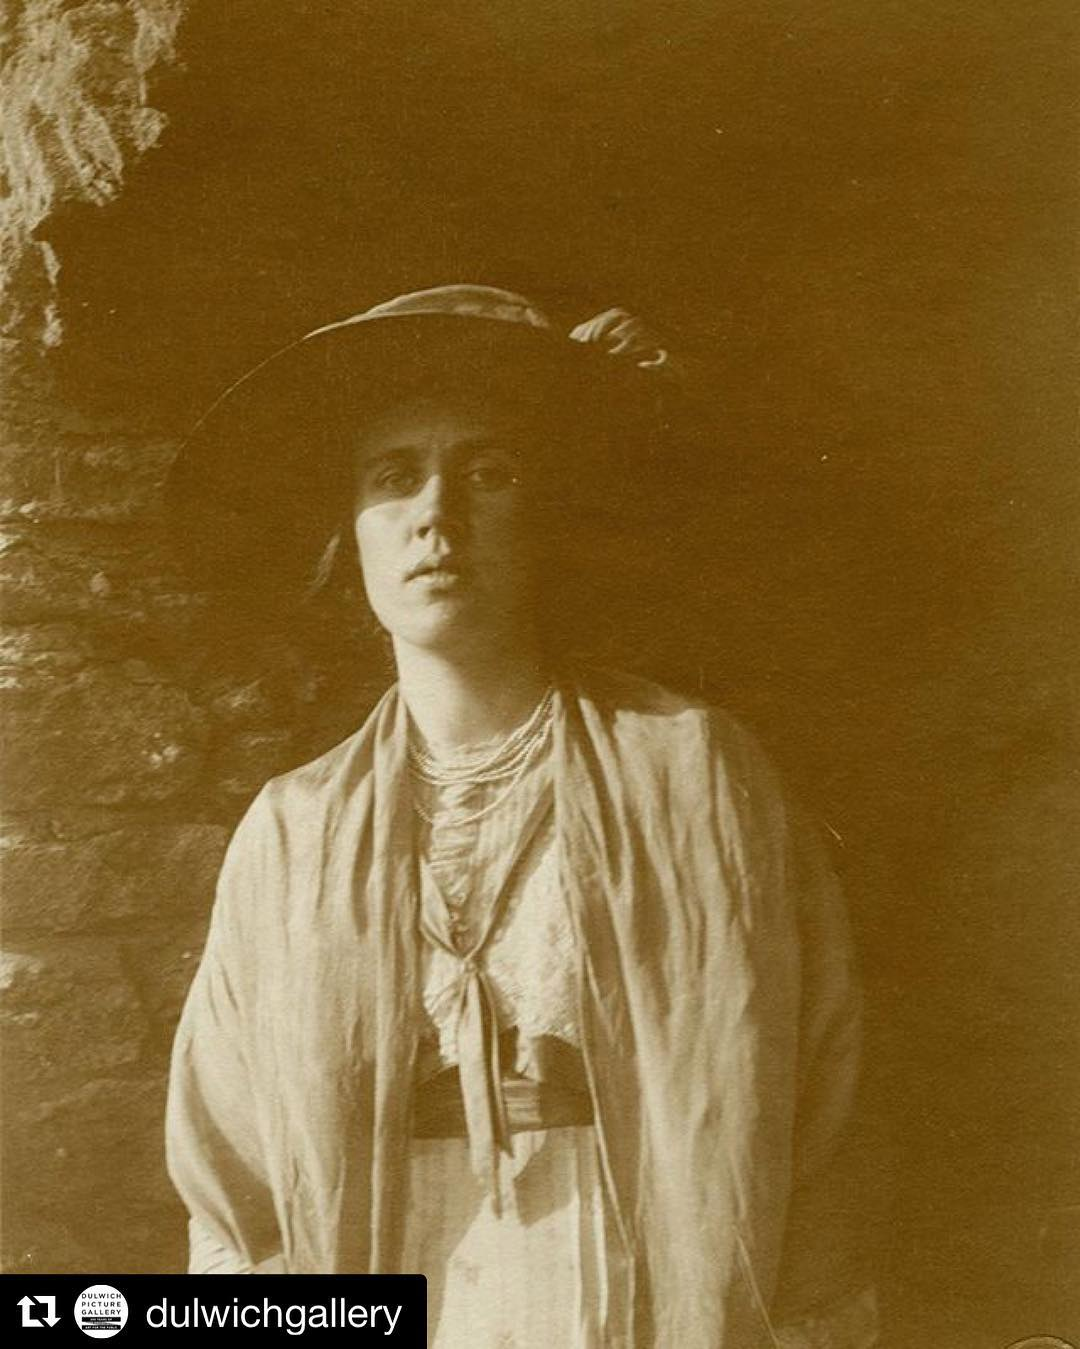 Now showing dulwichgallery VANESSA BELL The sister of Virginia Woolfhellip